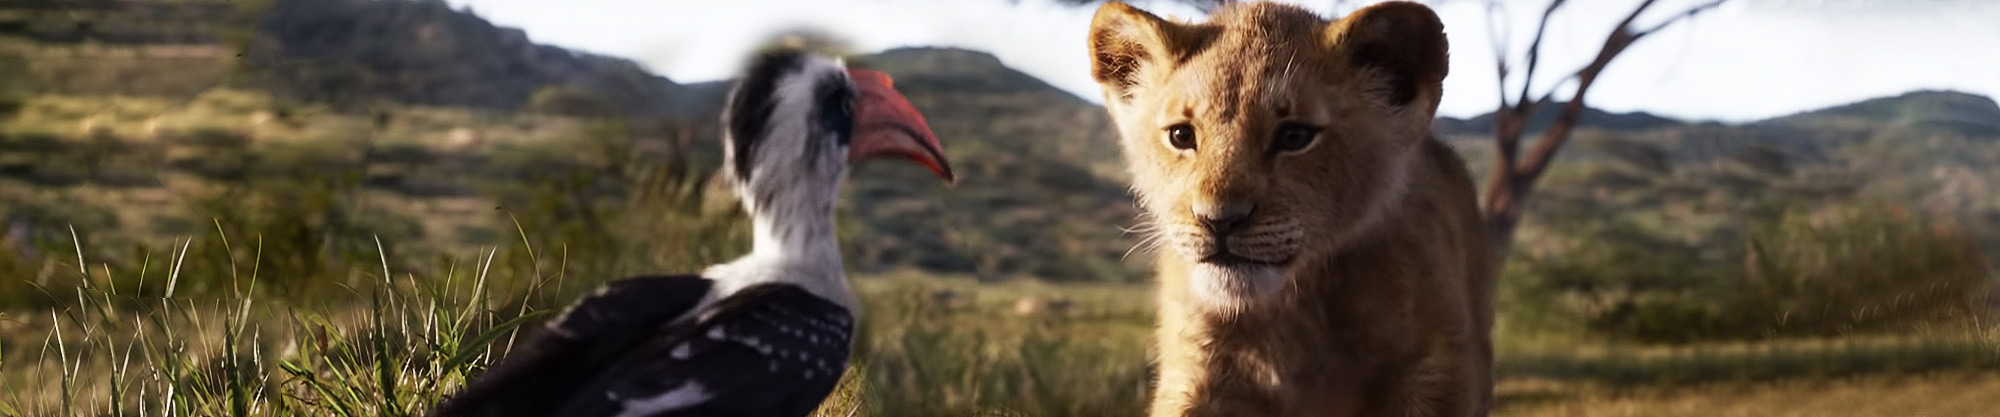 the lion king  jul 2019  movie tickets online booking  showtimes in kolkata  paytm com